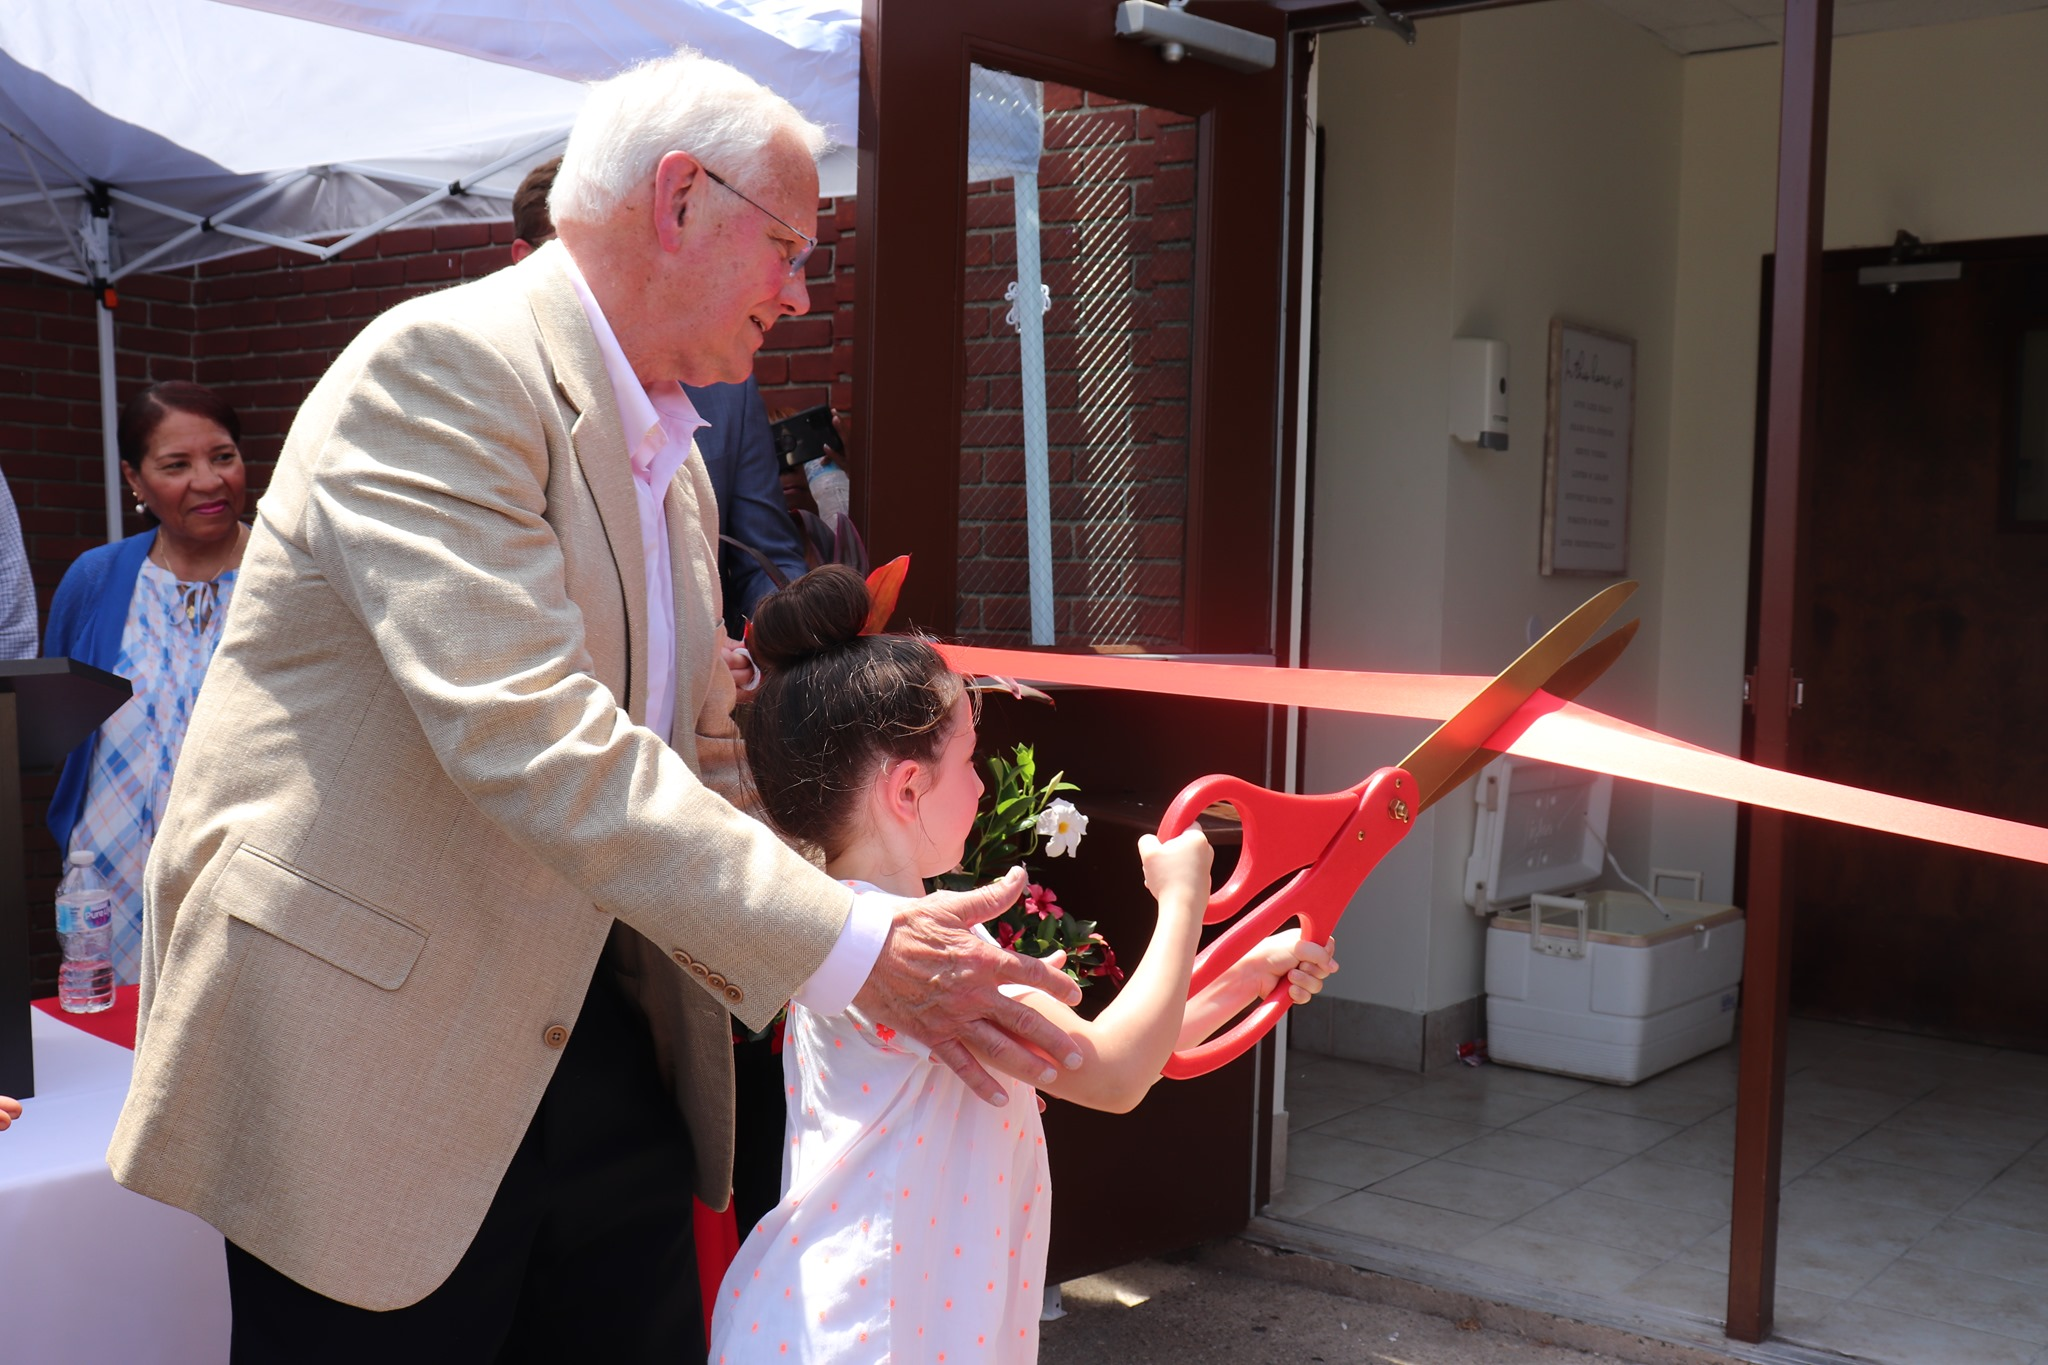 A man and child cutting the ribbon at the grand opening of Lucy Baney Reunification Center